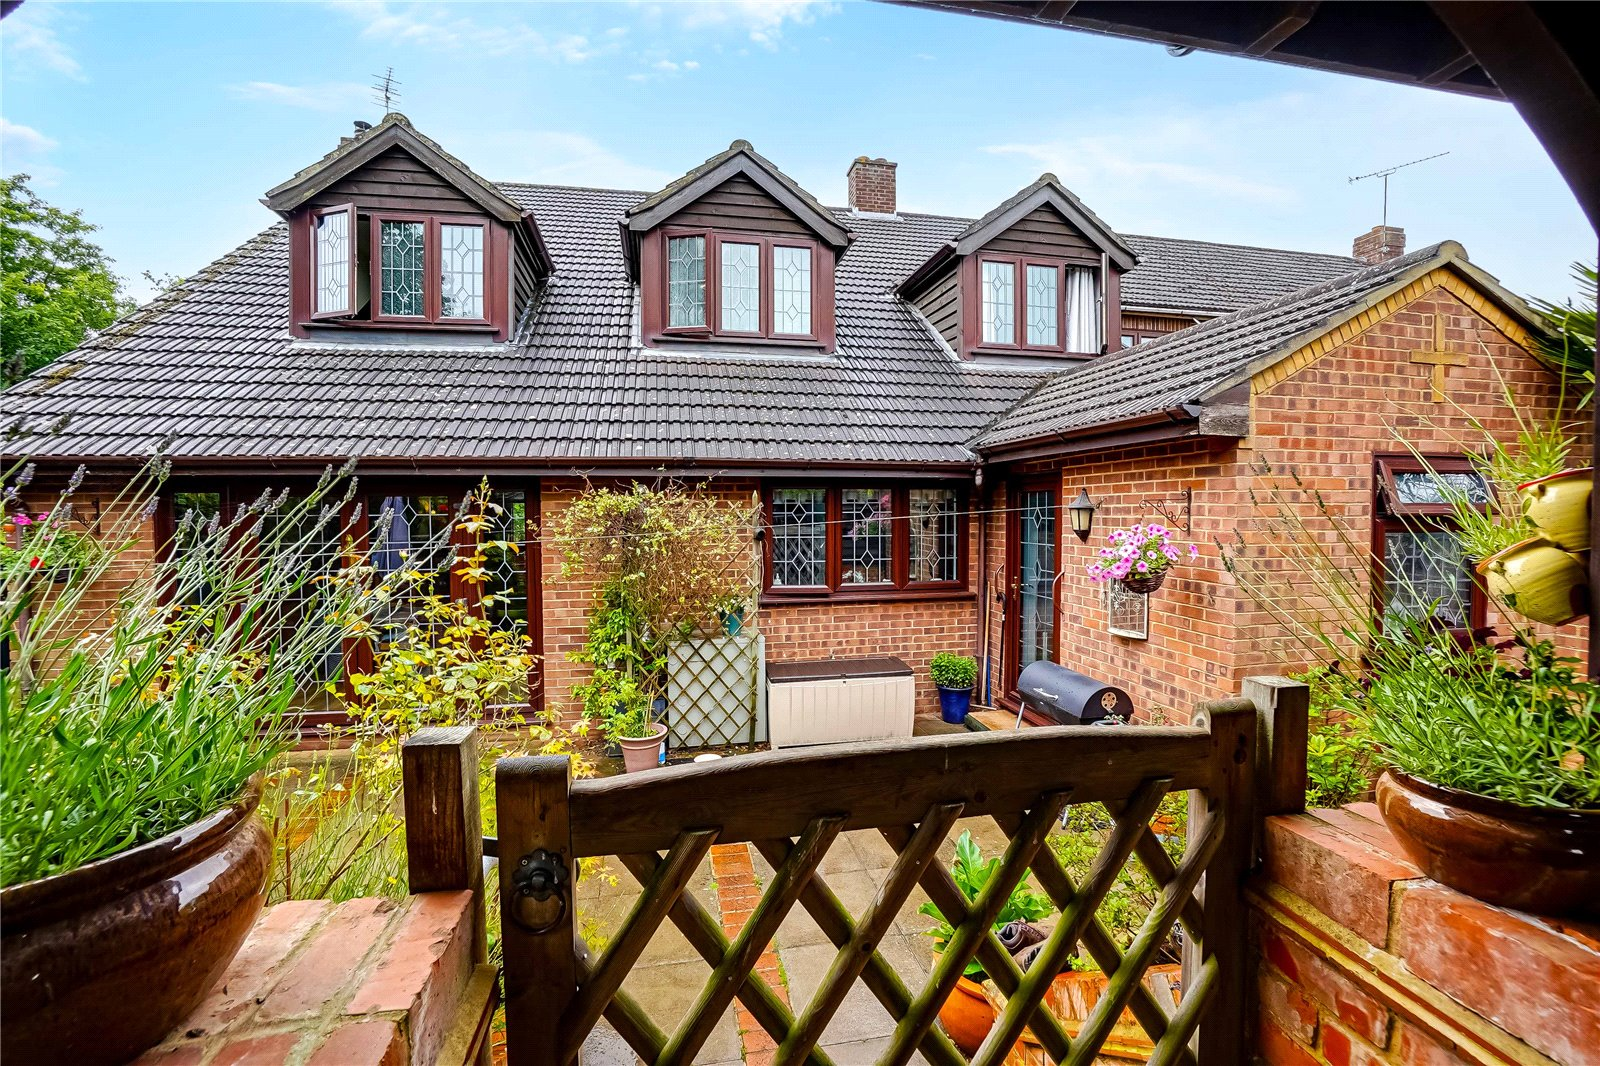 4 bed house for sale in Hermitage Lane, Maidstone  - Property Image 26